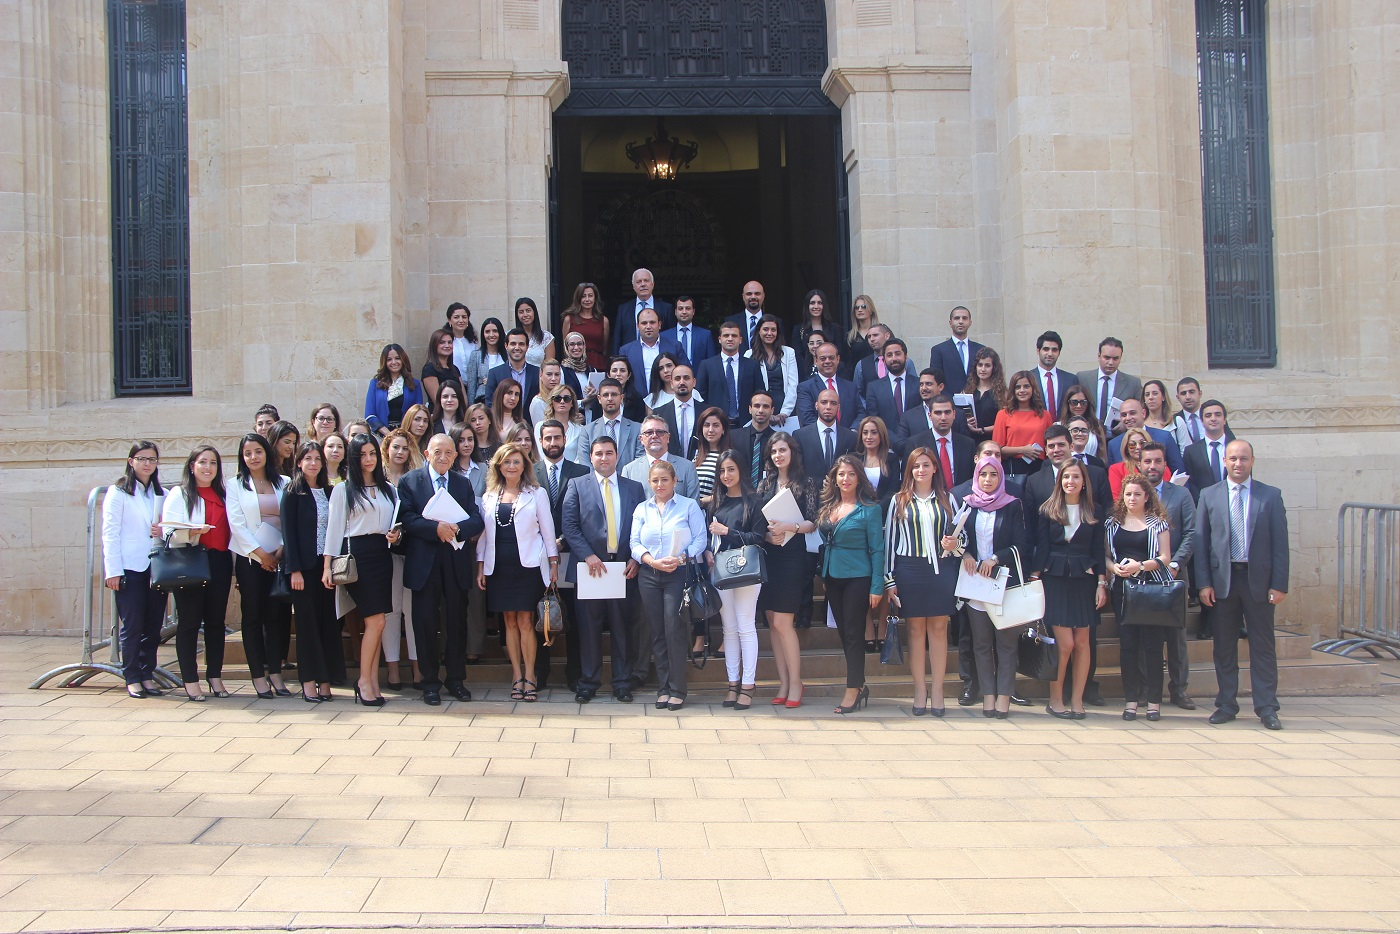 International Human Rights Conventions at the Law Making Process in Lebanon